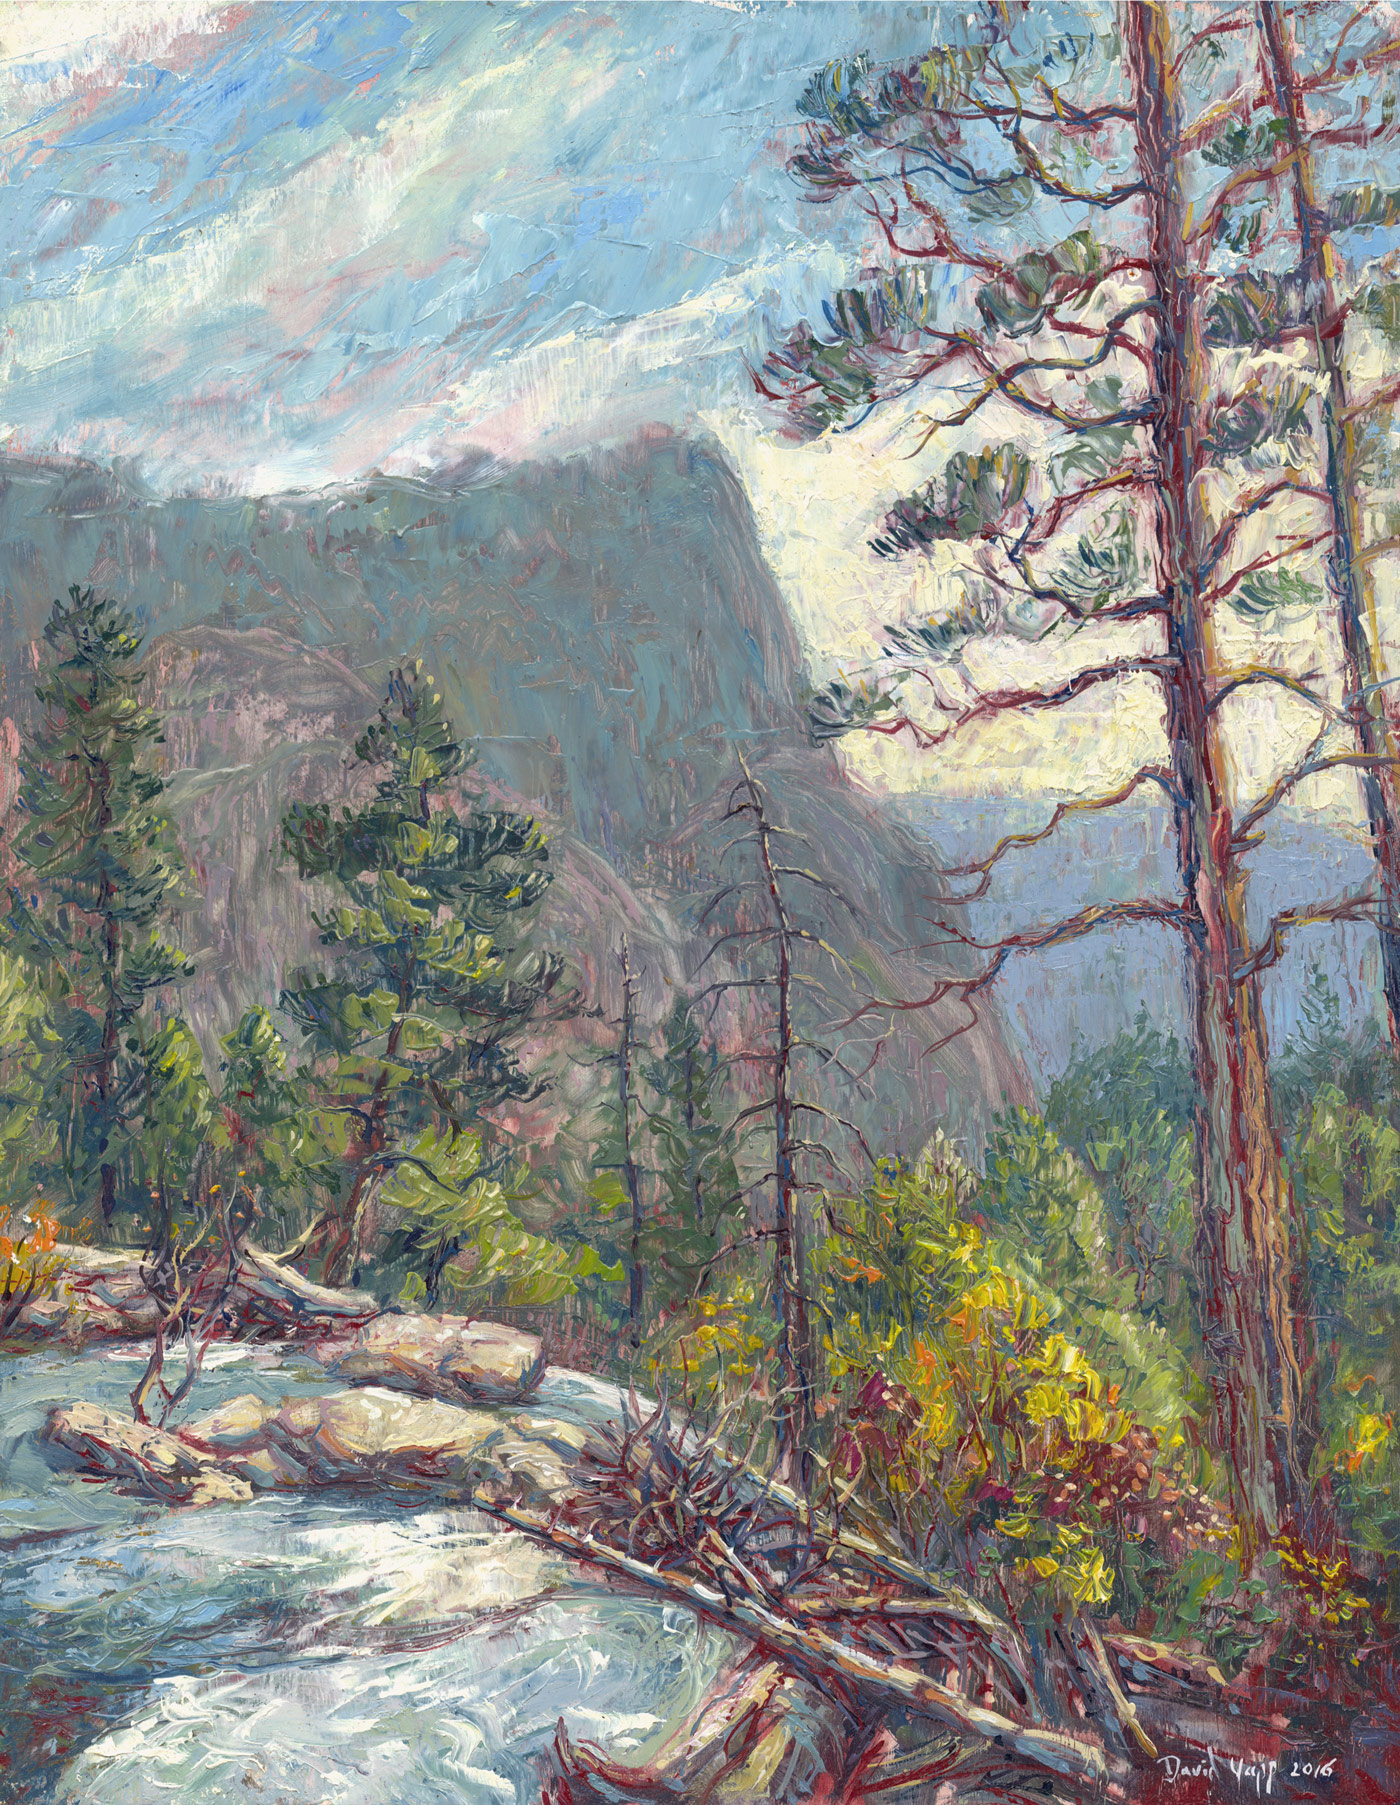 Lover's Leap from Pyramid Creek